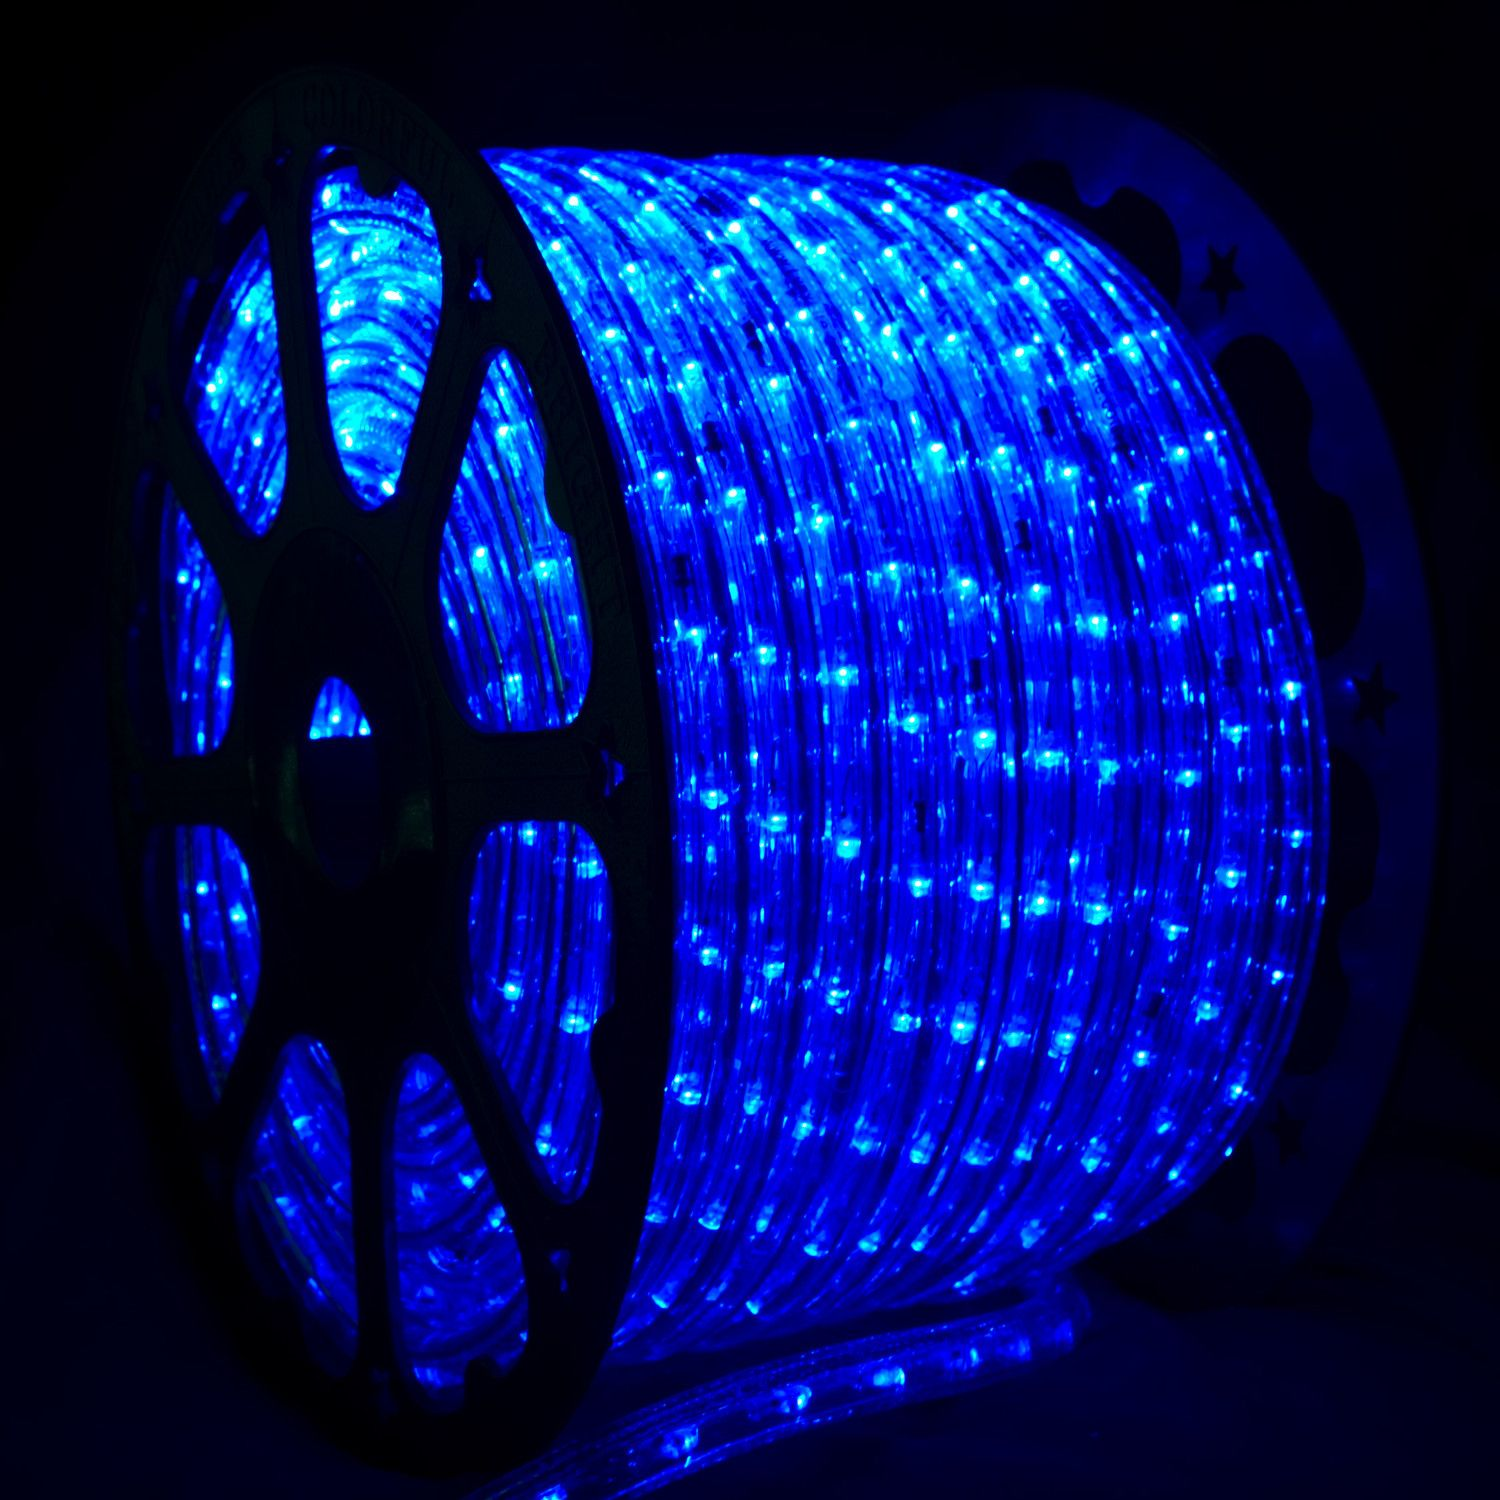 150 Blue Led Rope Light 2 Wire 1 2 120 Volt Led Rope Lights Rope Light Rope Lights